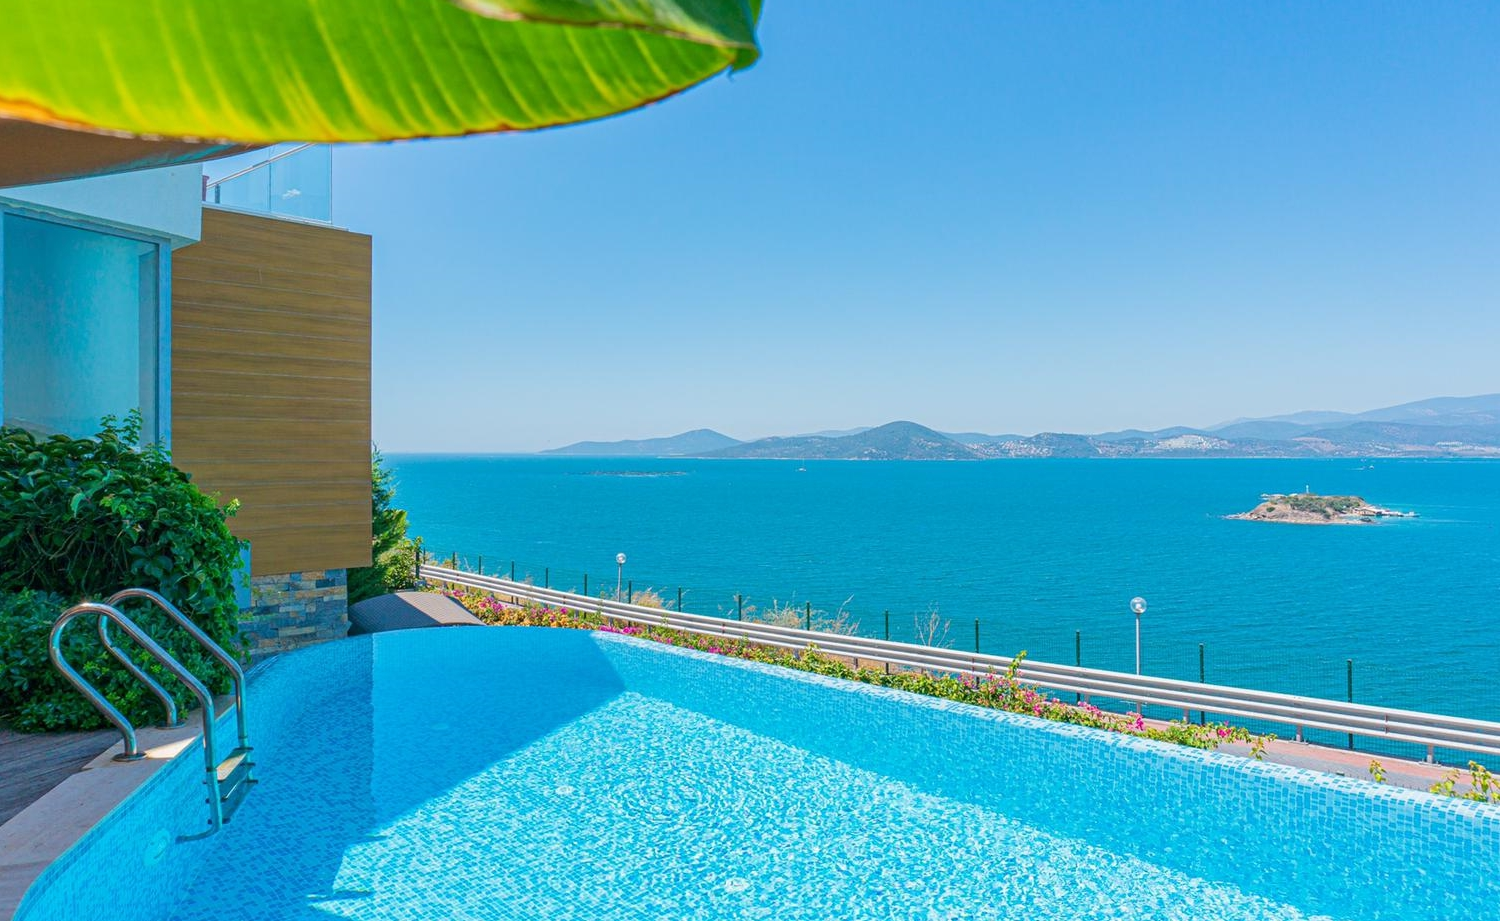 Villa With A Great View Of Adabükü, Bodrum